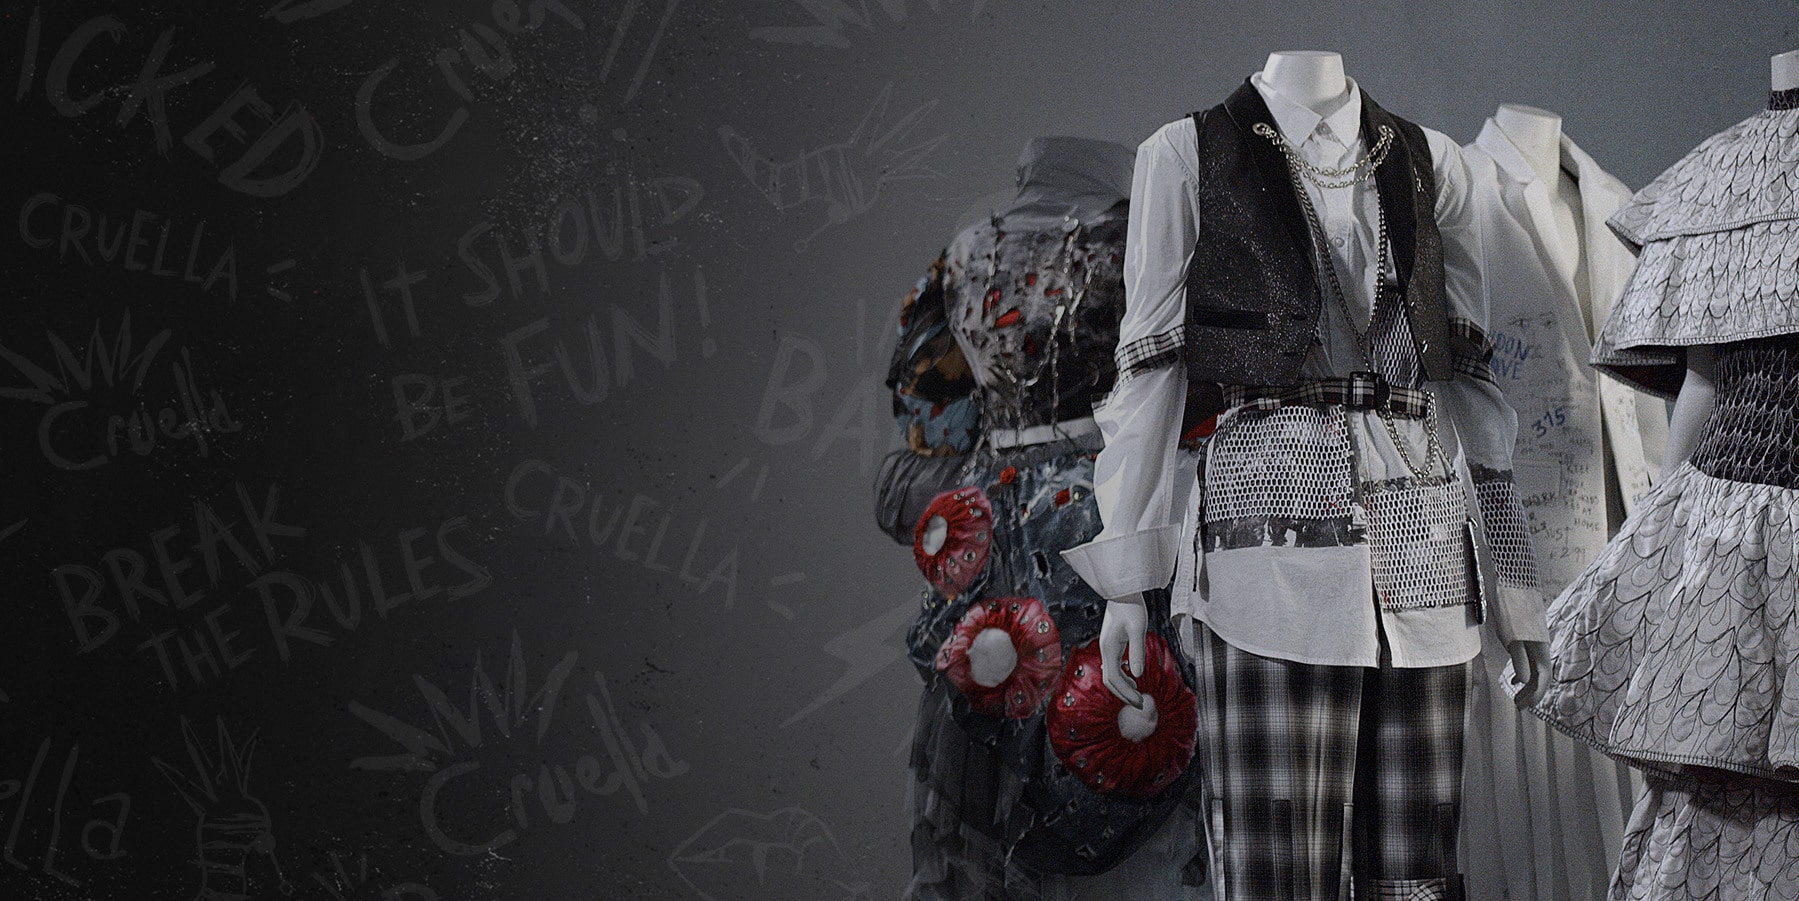 An outfit from the Disney's Cruella and RMIT fashion exhibition